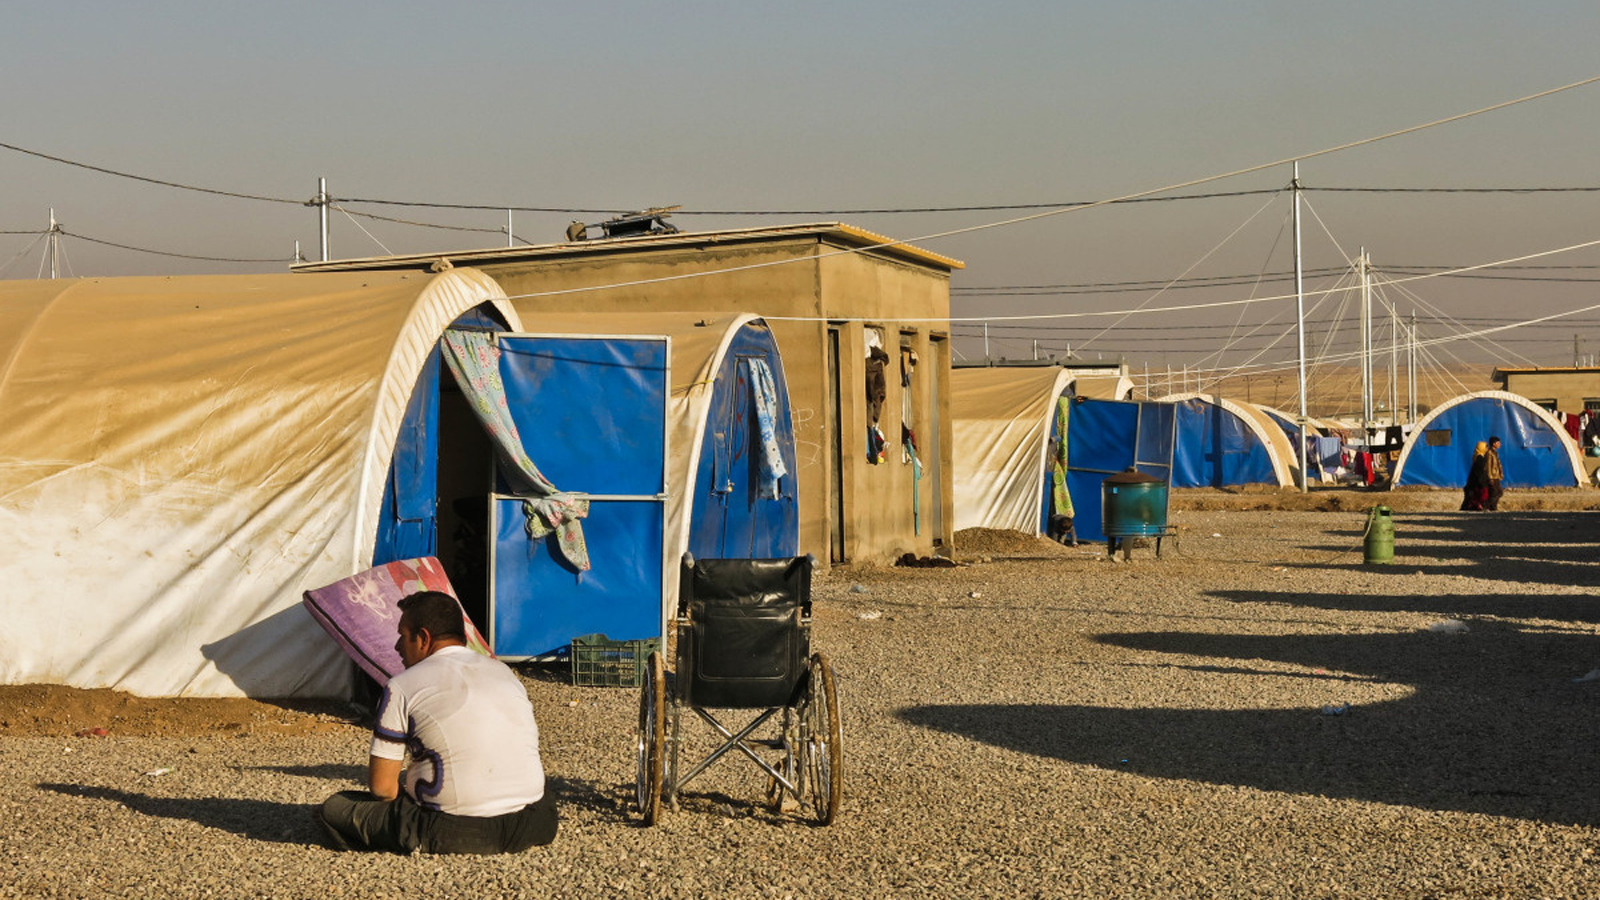 A man with disabilites sits on the ground at the Khazer camp in Iraq